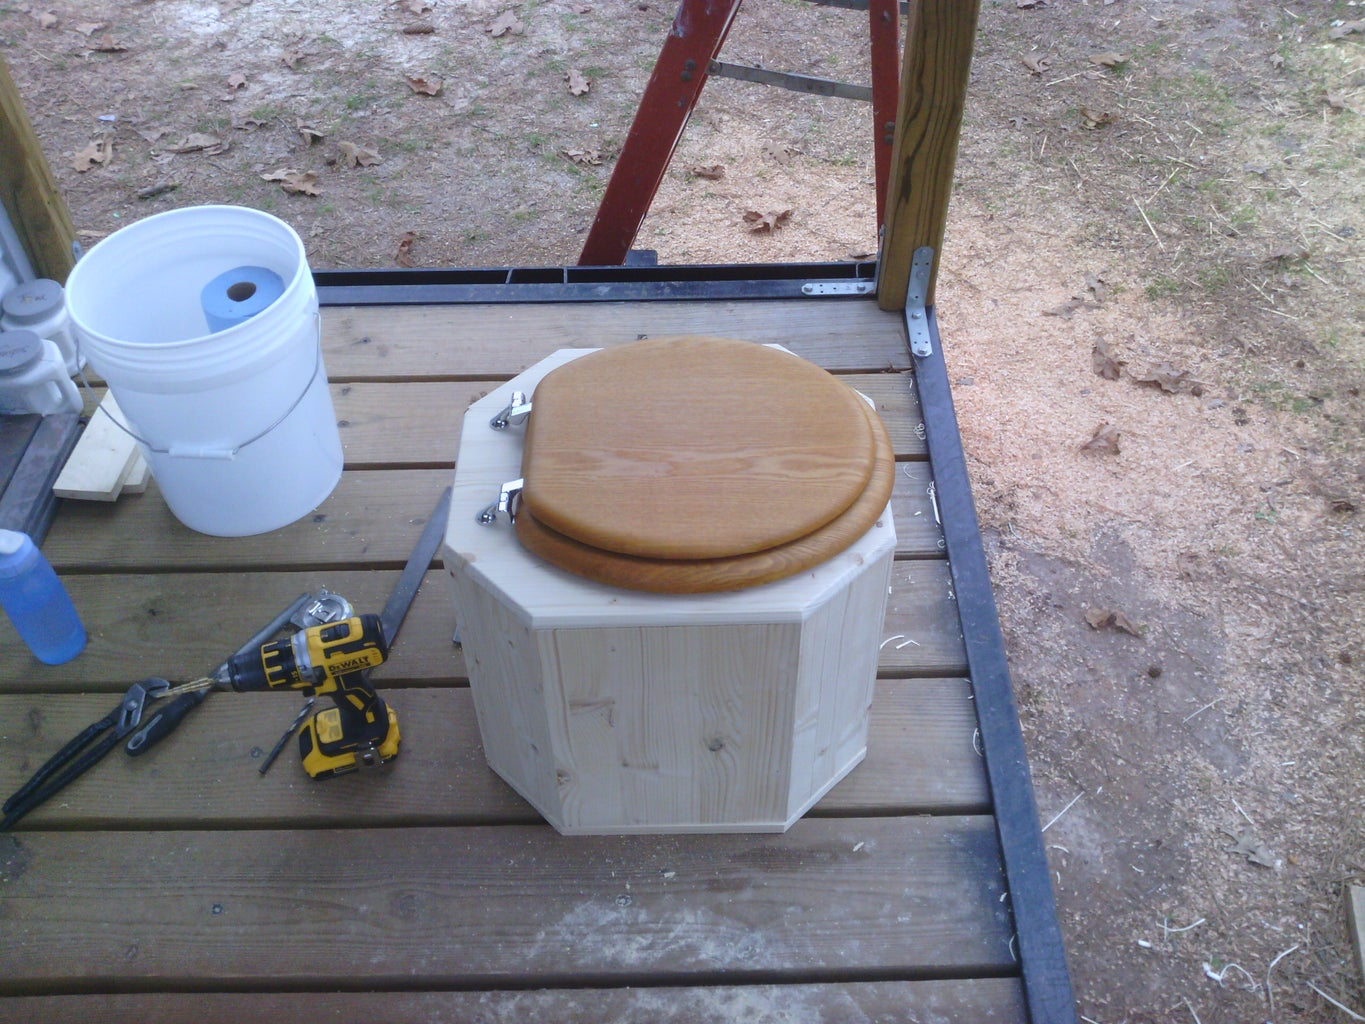 Assembling the Toilet Base and Testing?